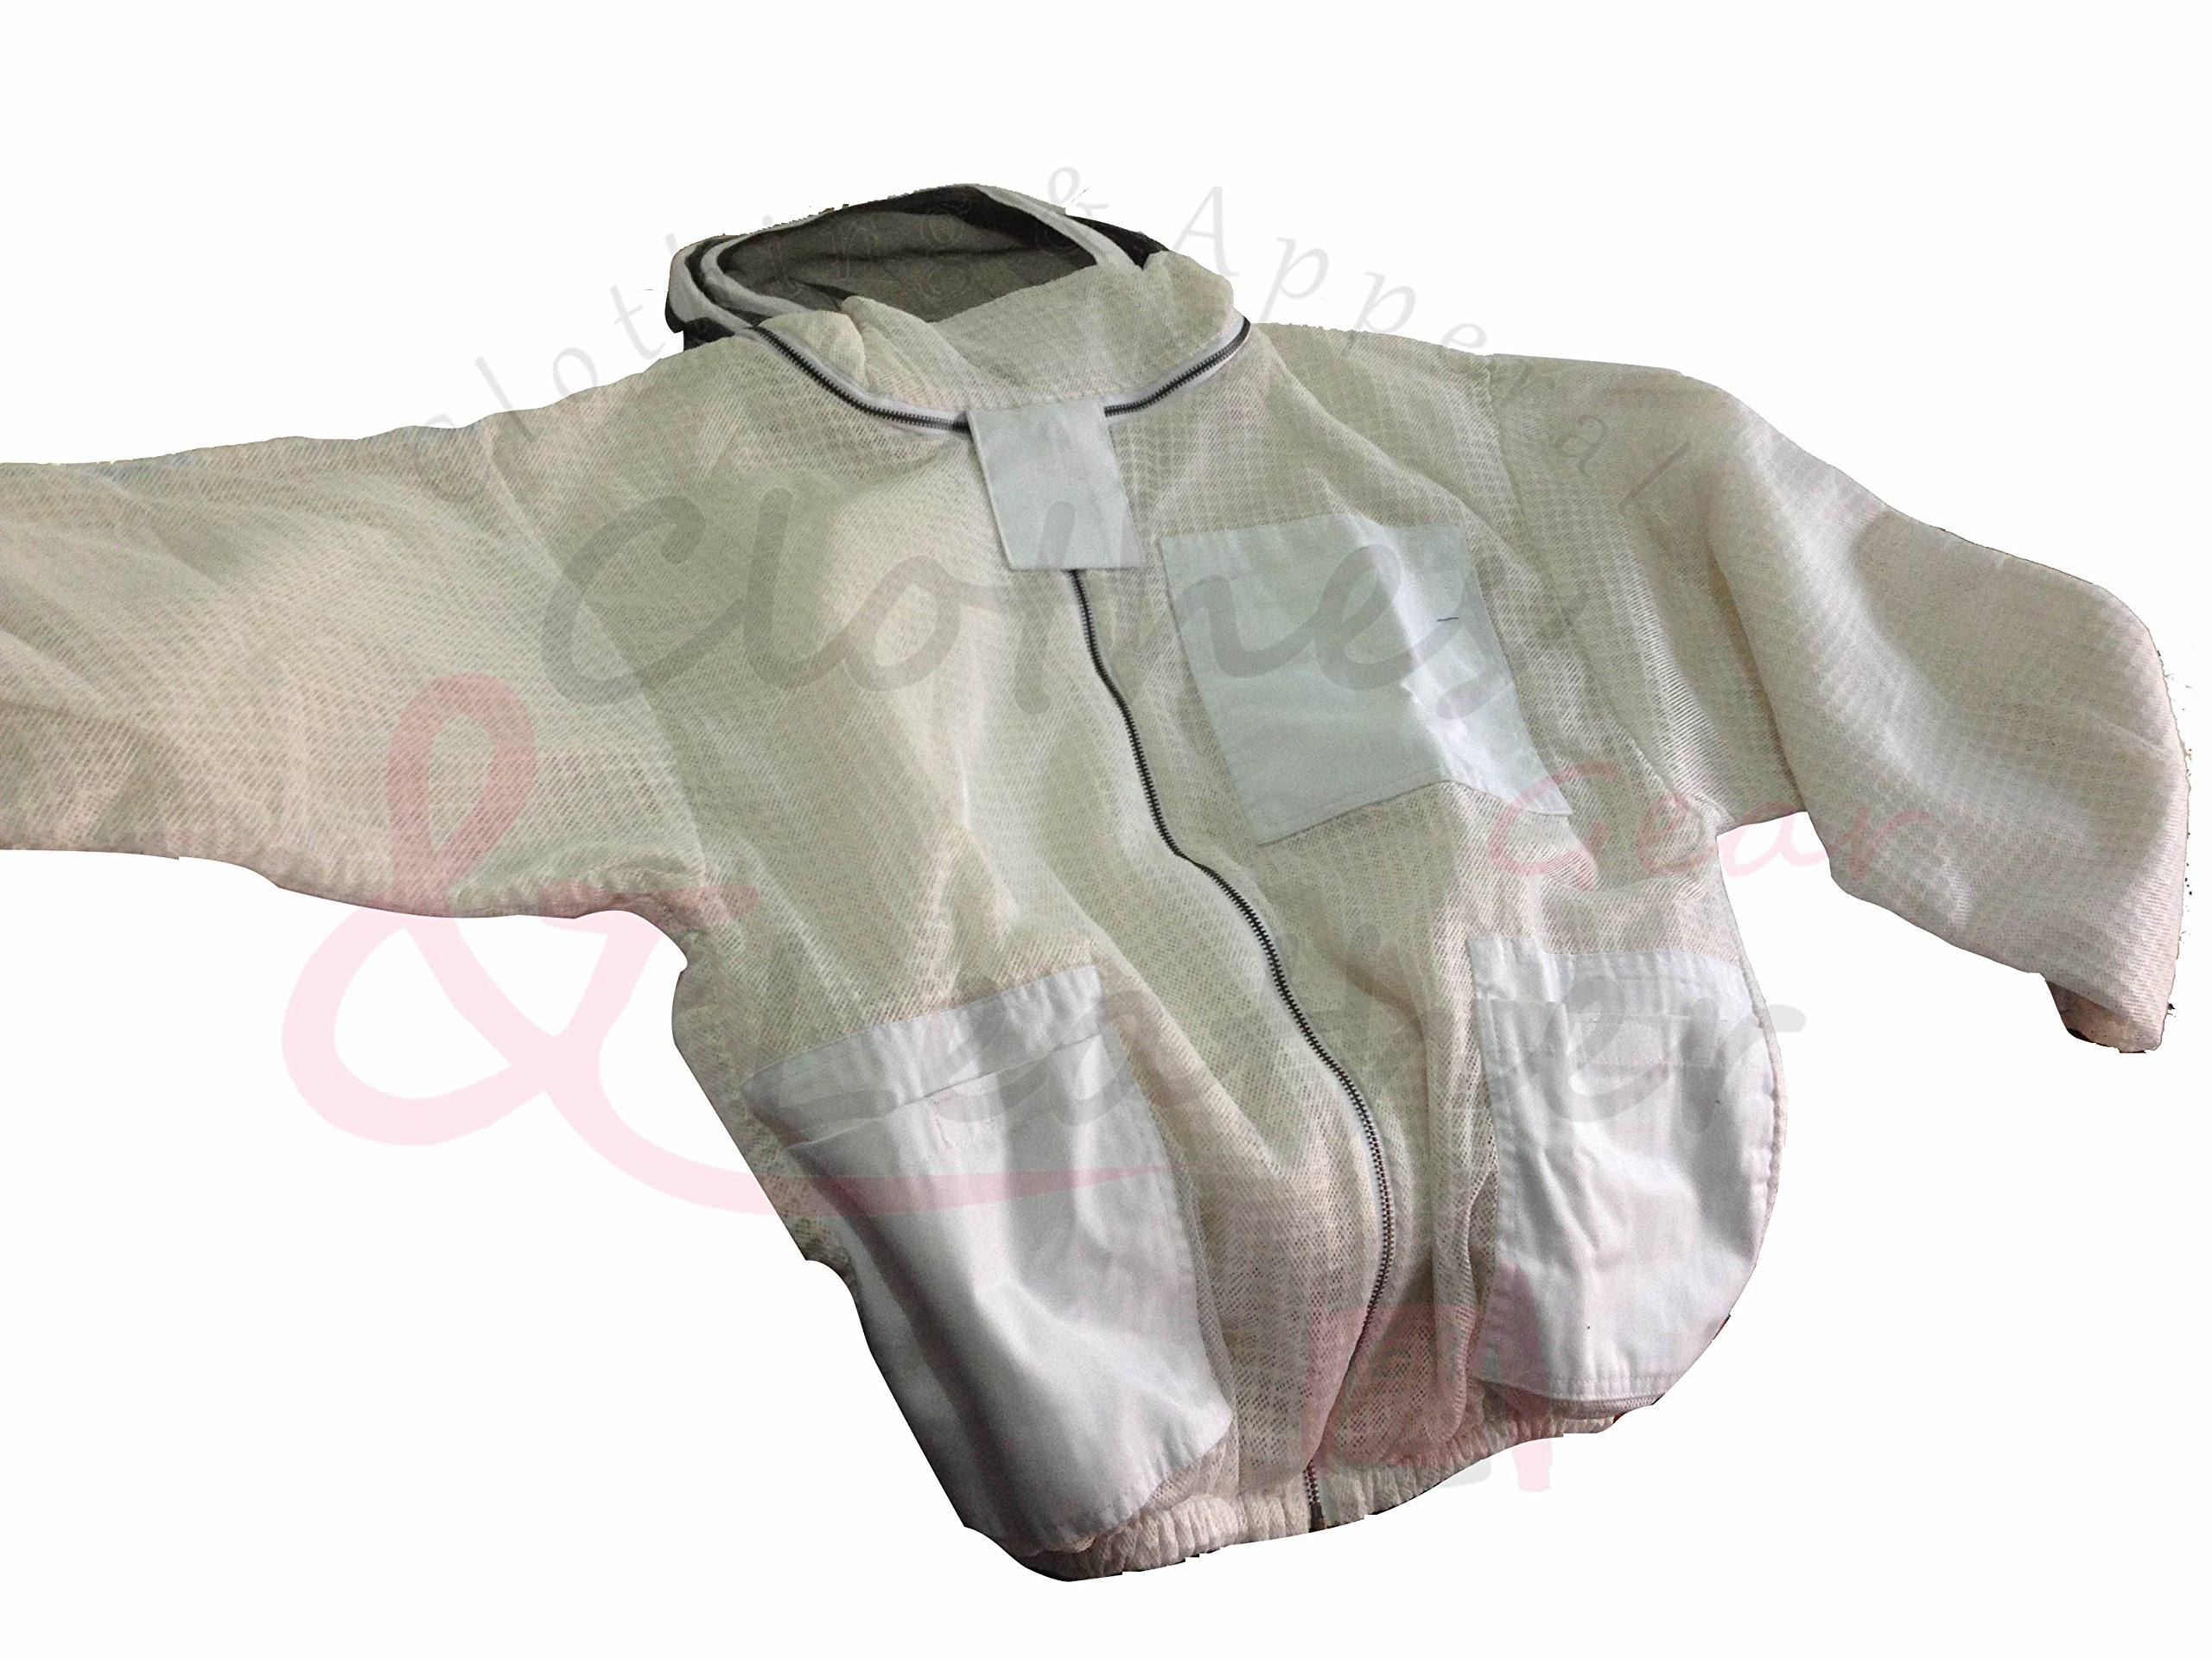 Ultra Ventilated Beekeeping Jacket With fancy Veil (XXL) by Clothes & Leather Gear (Image #5)